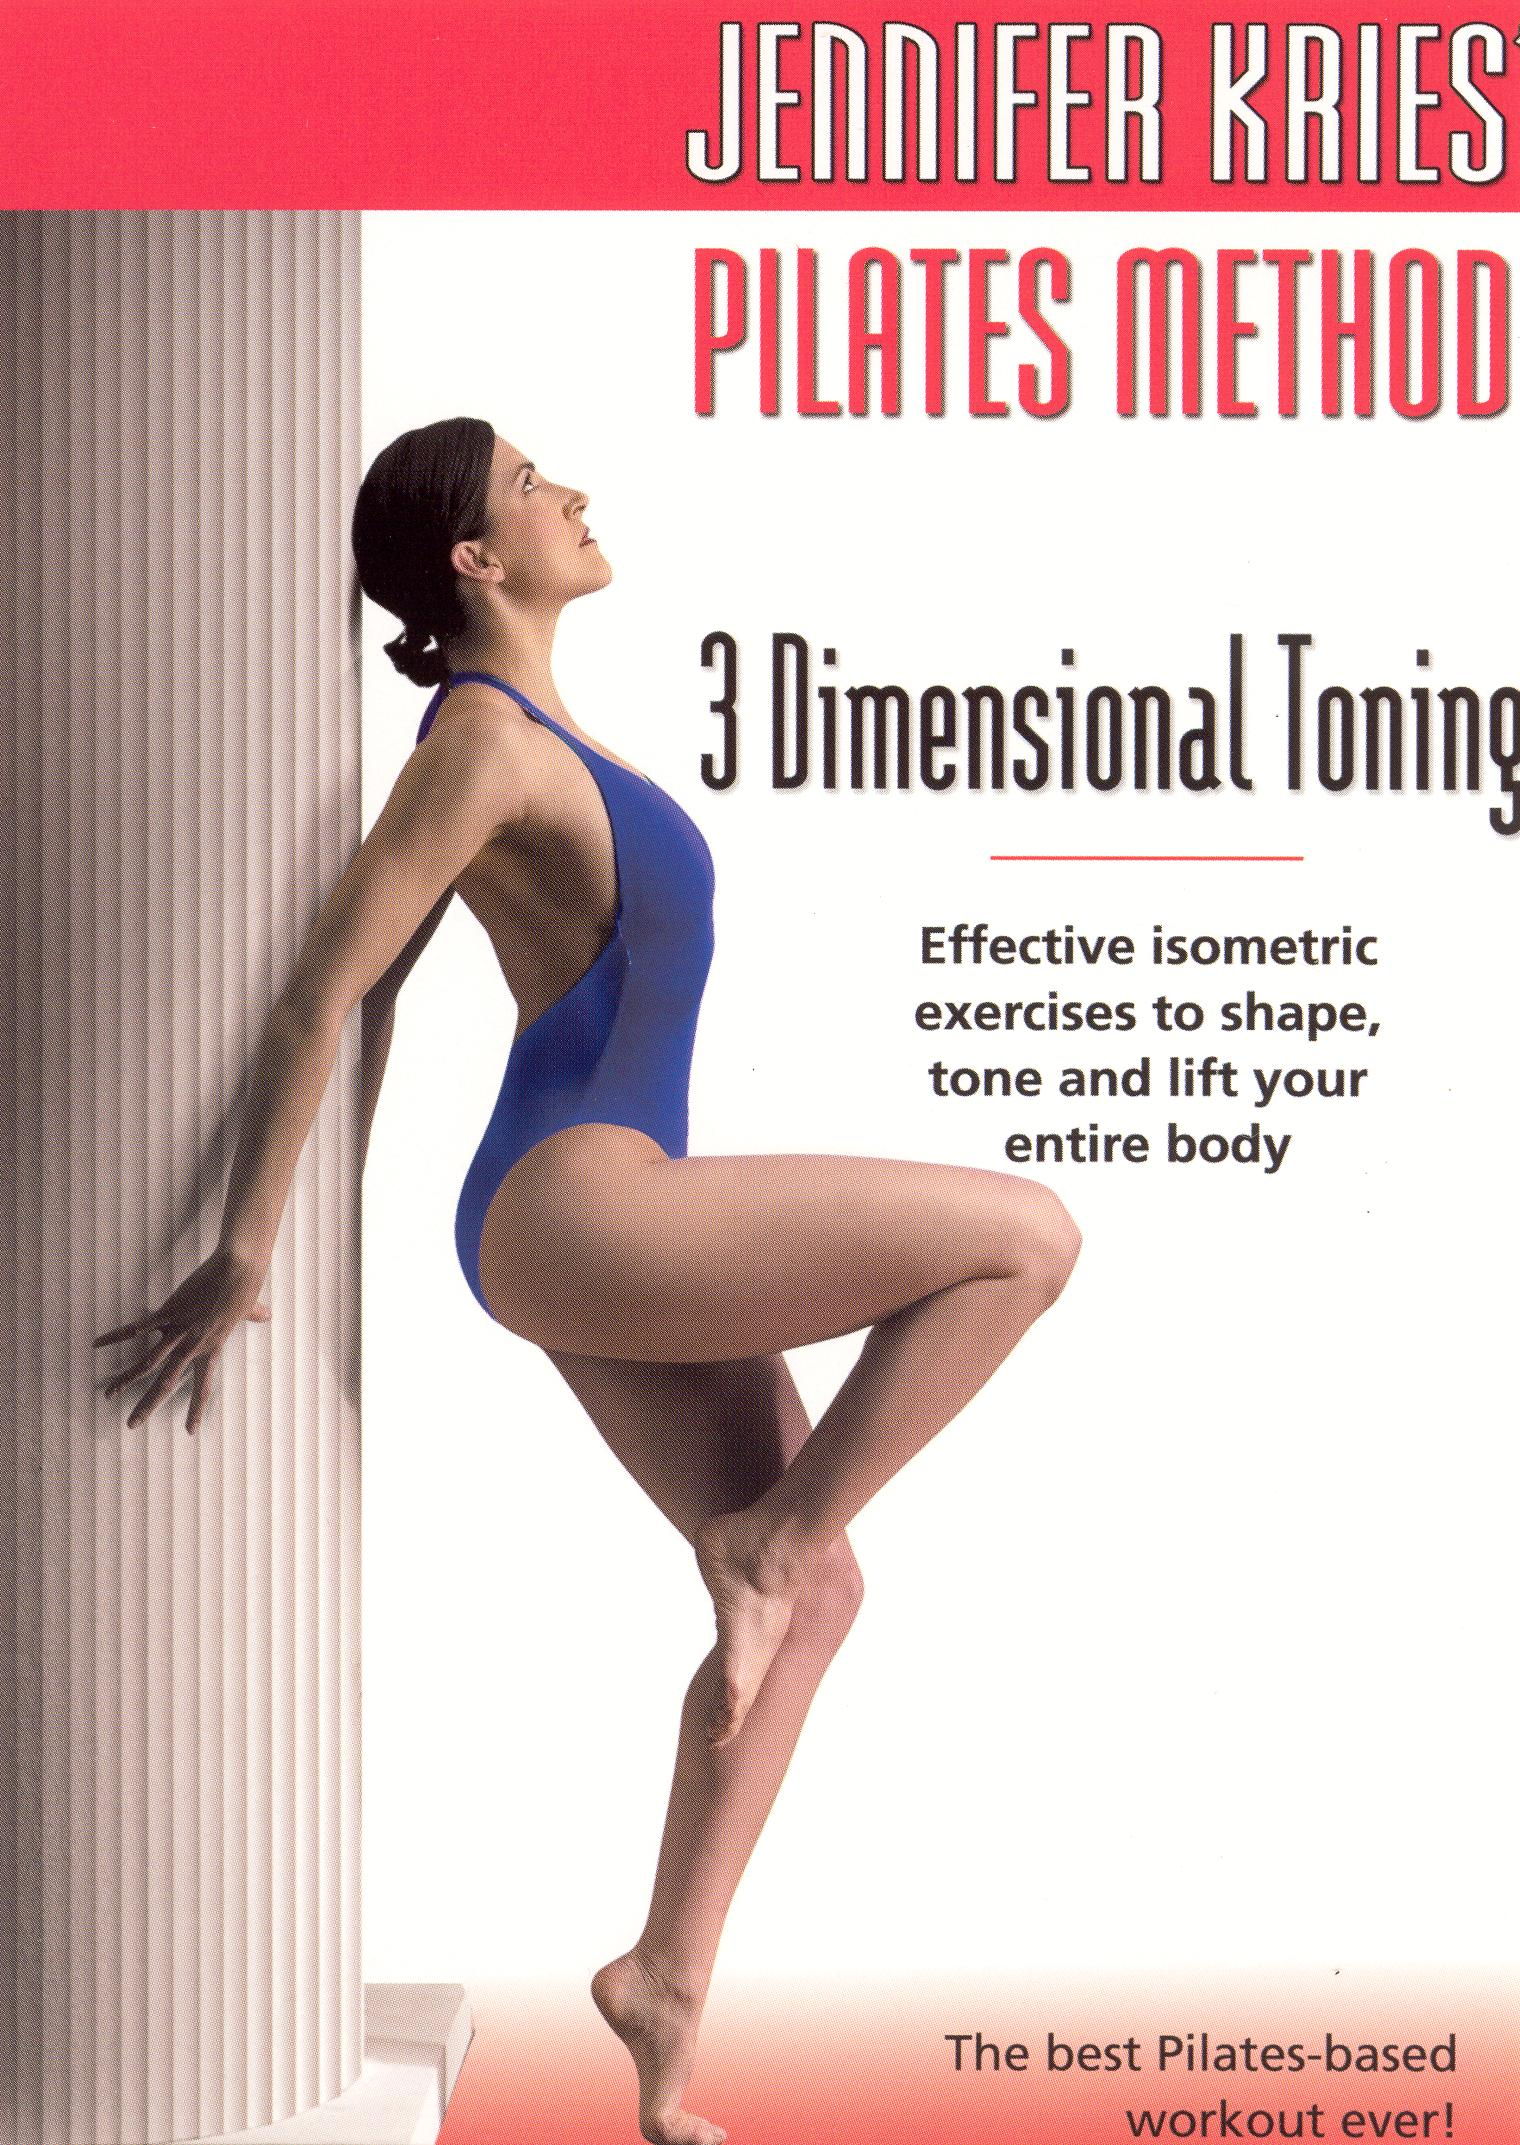 Pilates Method: 3 Dimensional Toning